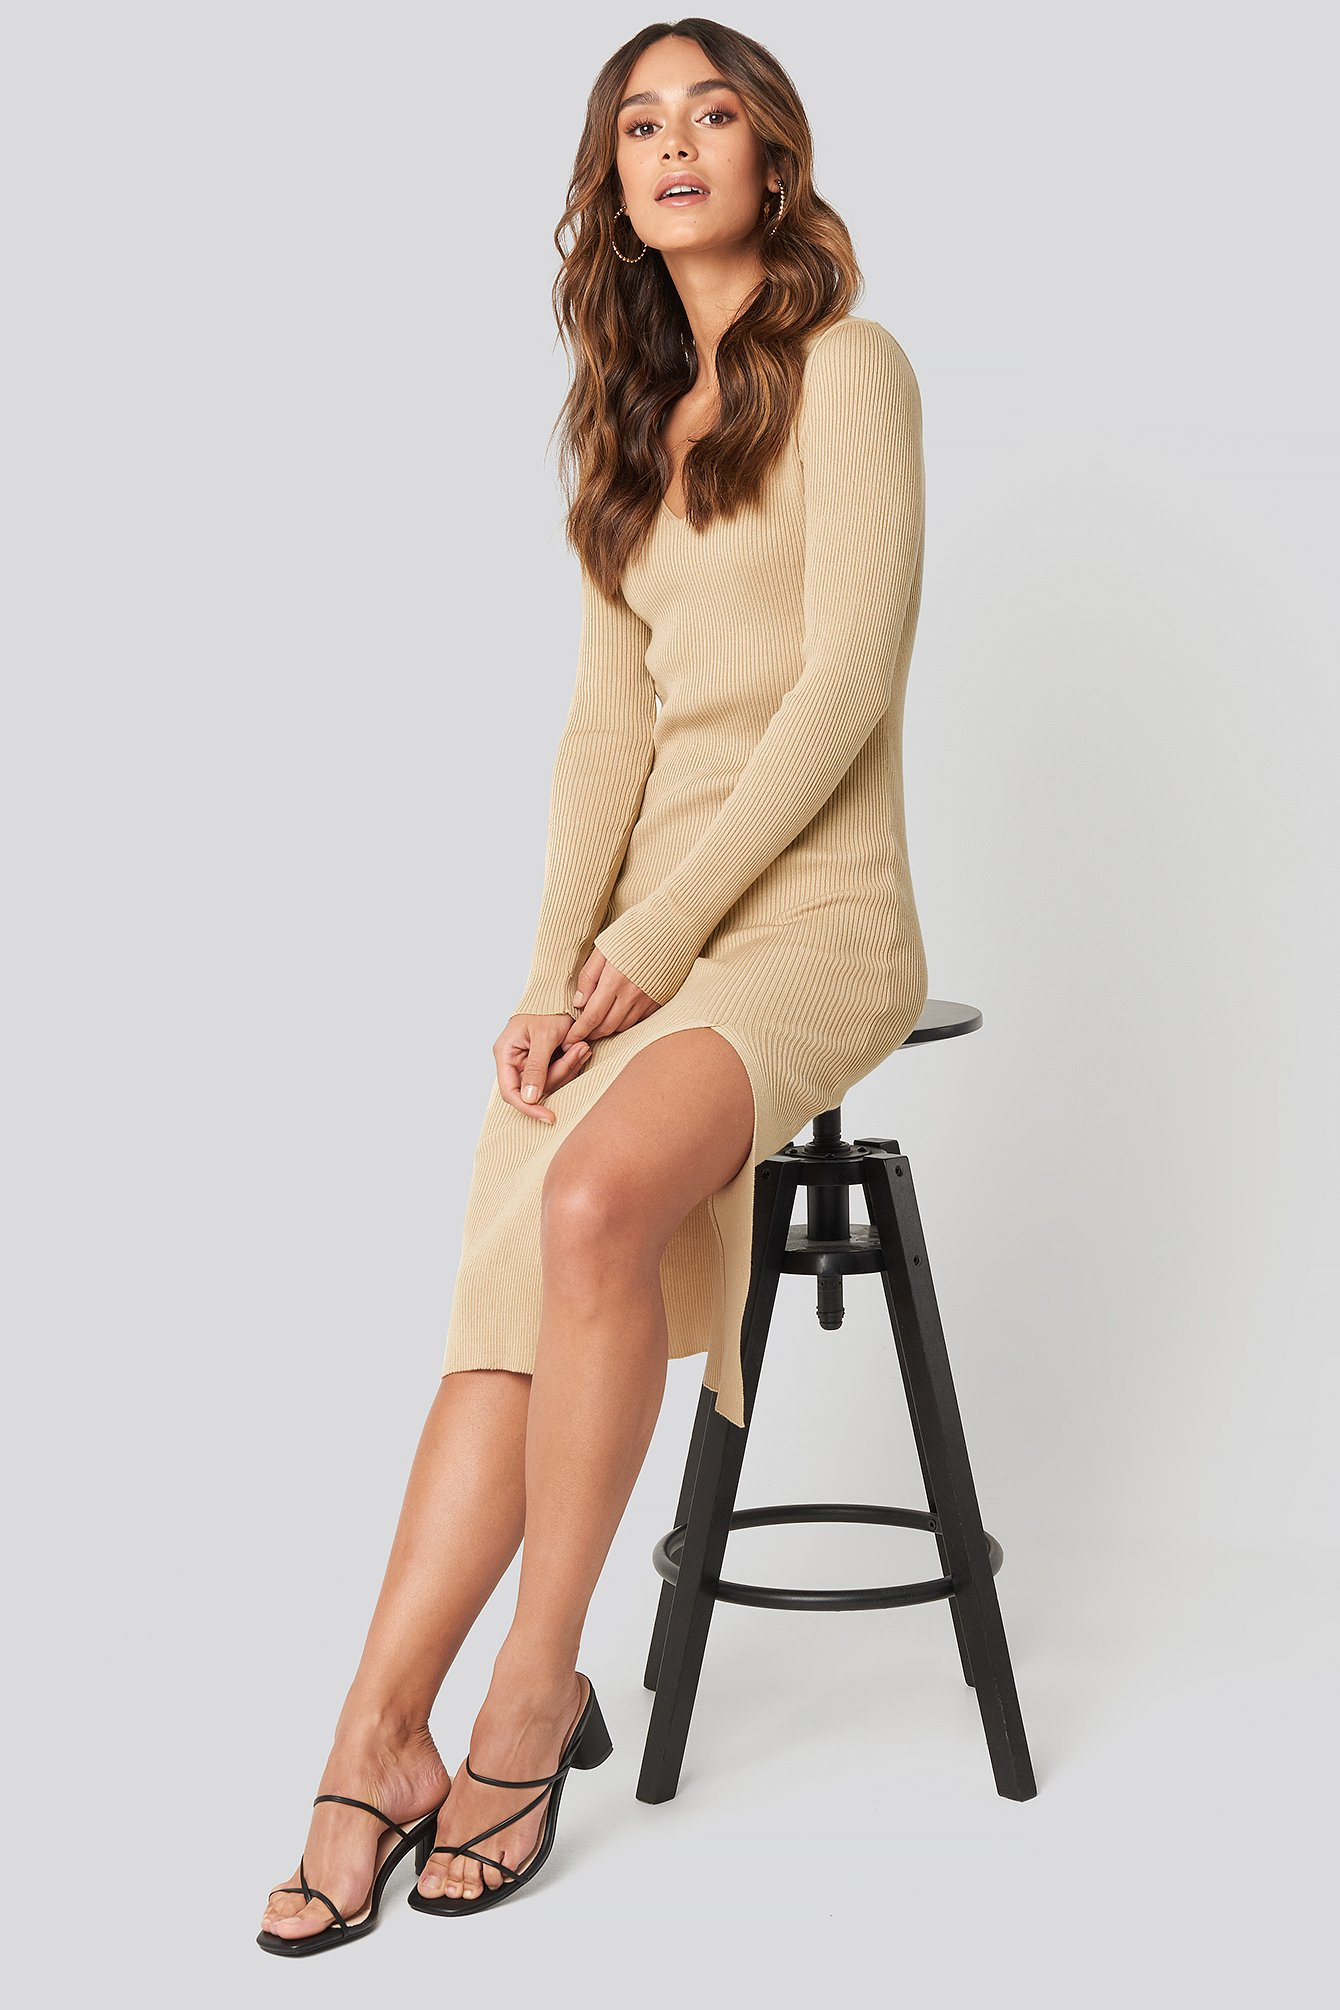 hanna weig x na-kd -  Front Slit Knit Dress - Beige